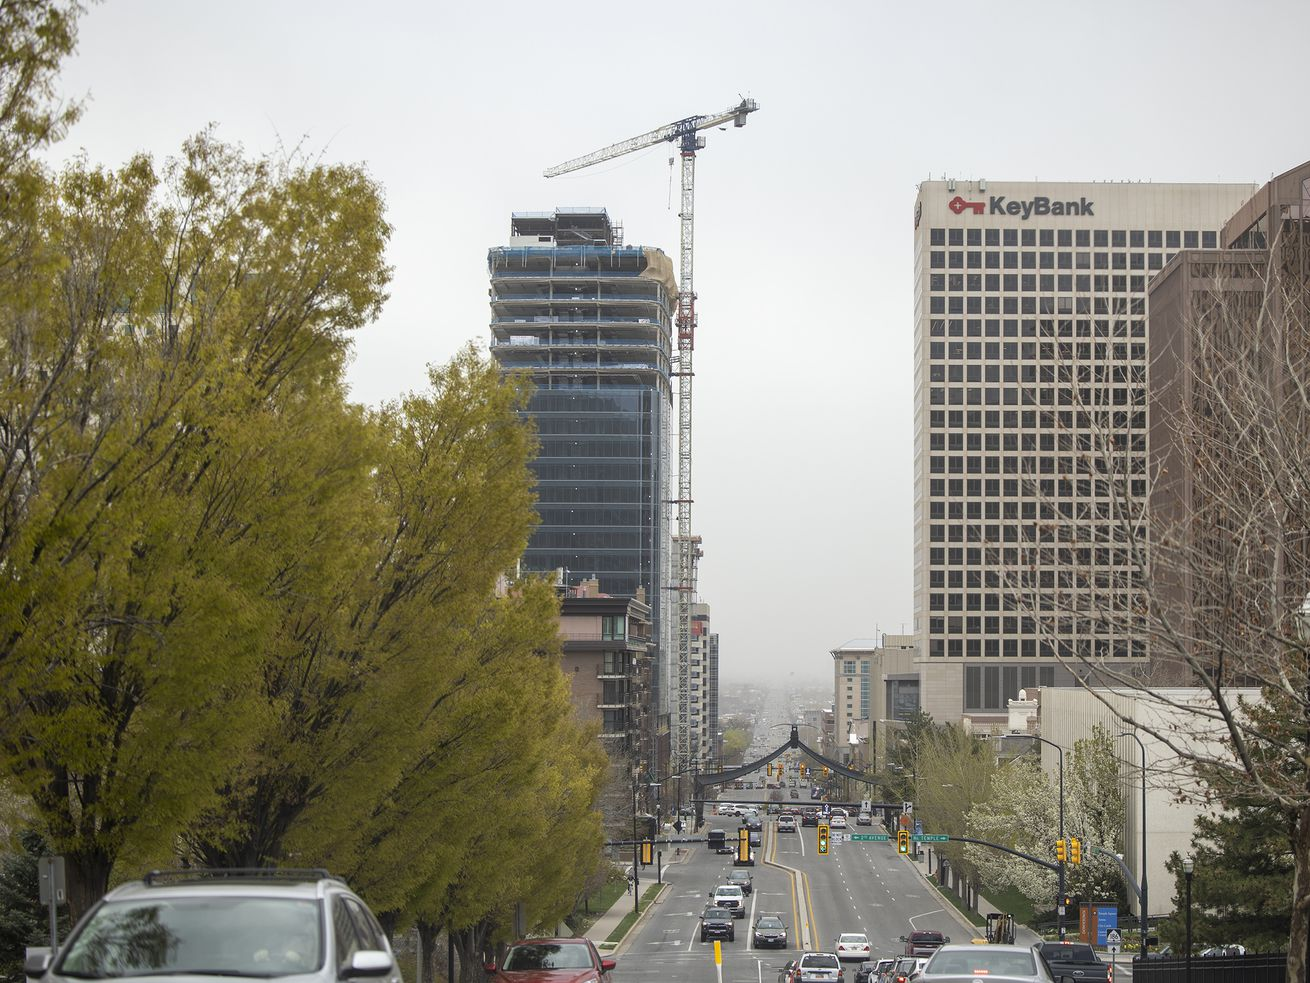 Utah's economy leads the nation. What was the key to success?